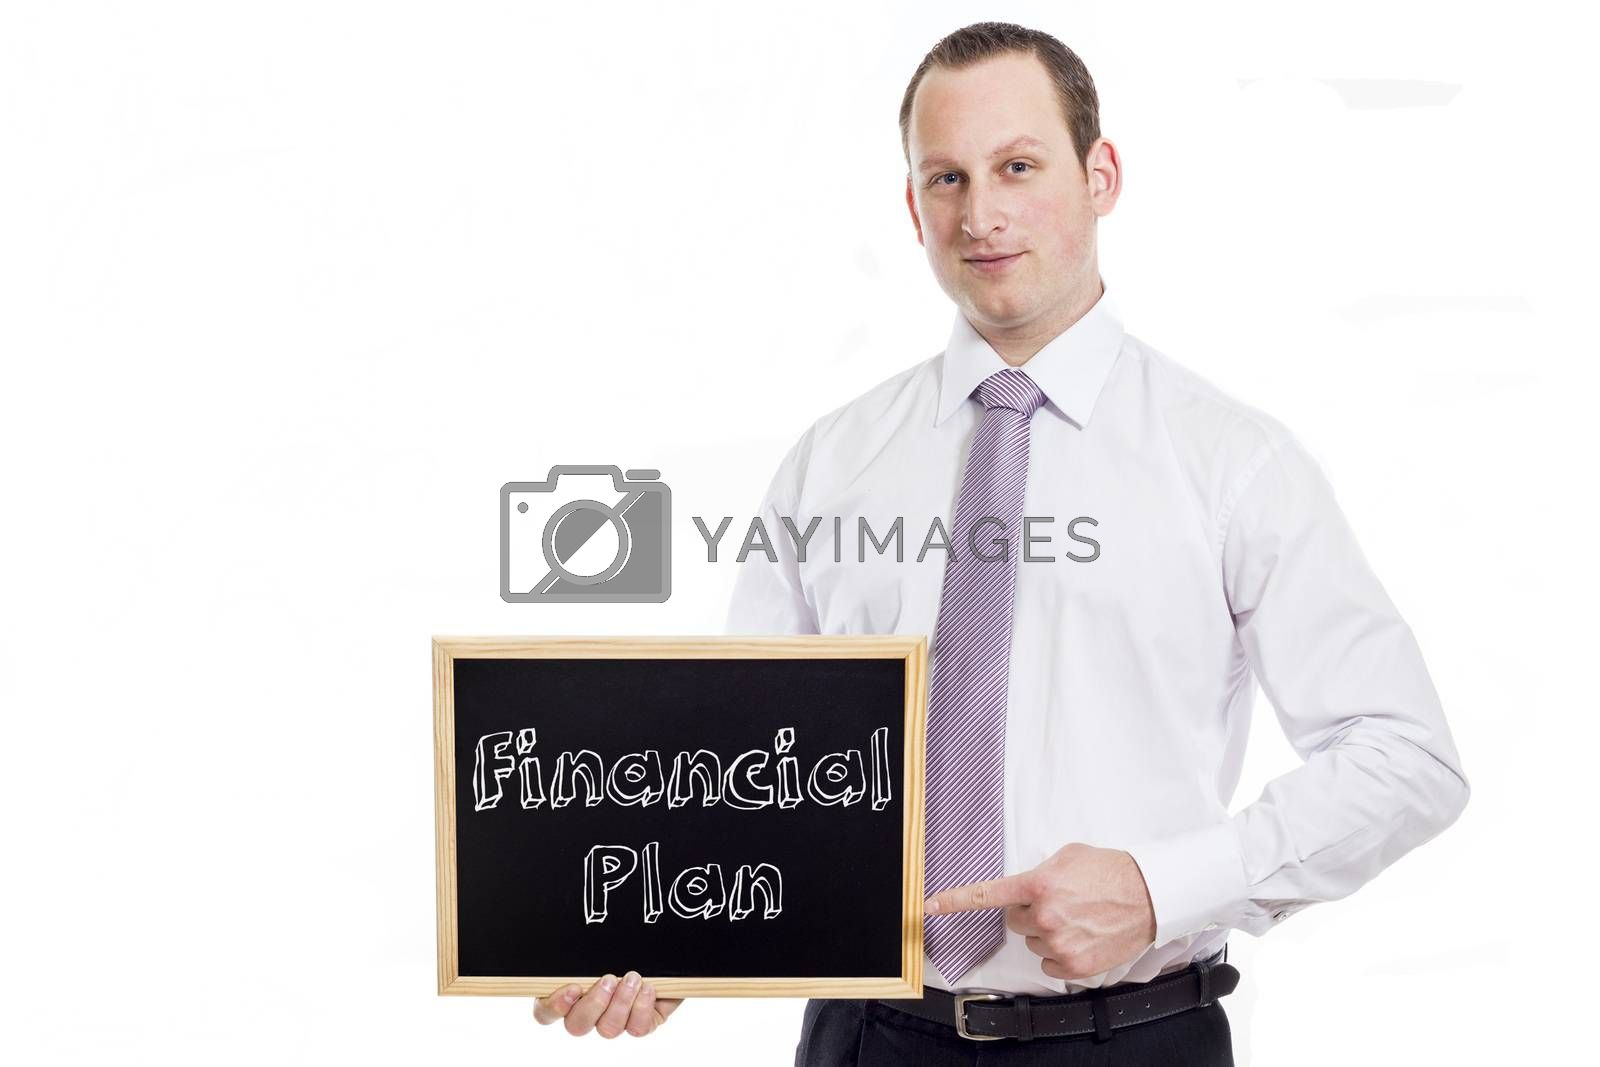 Financial Plan- Young businessman with blackboard - isolated on white